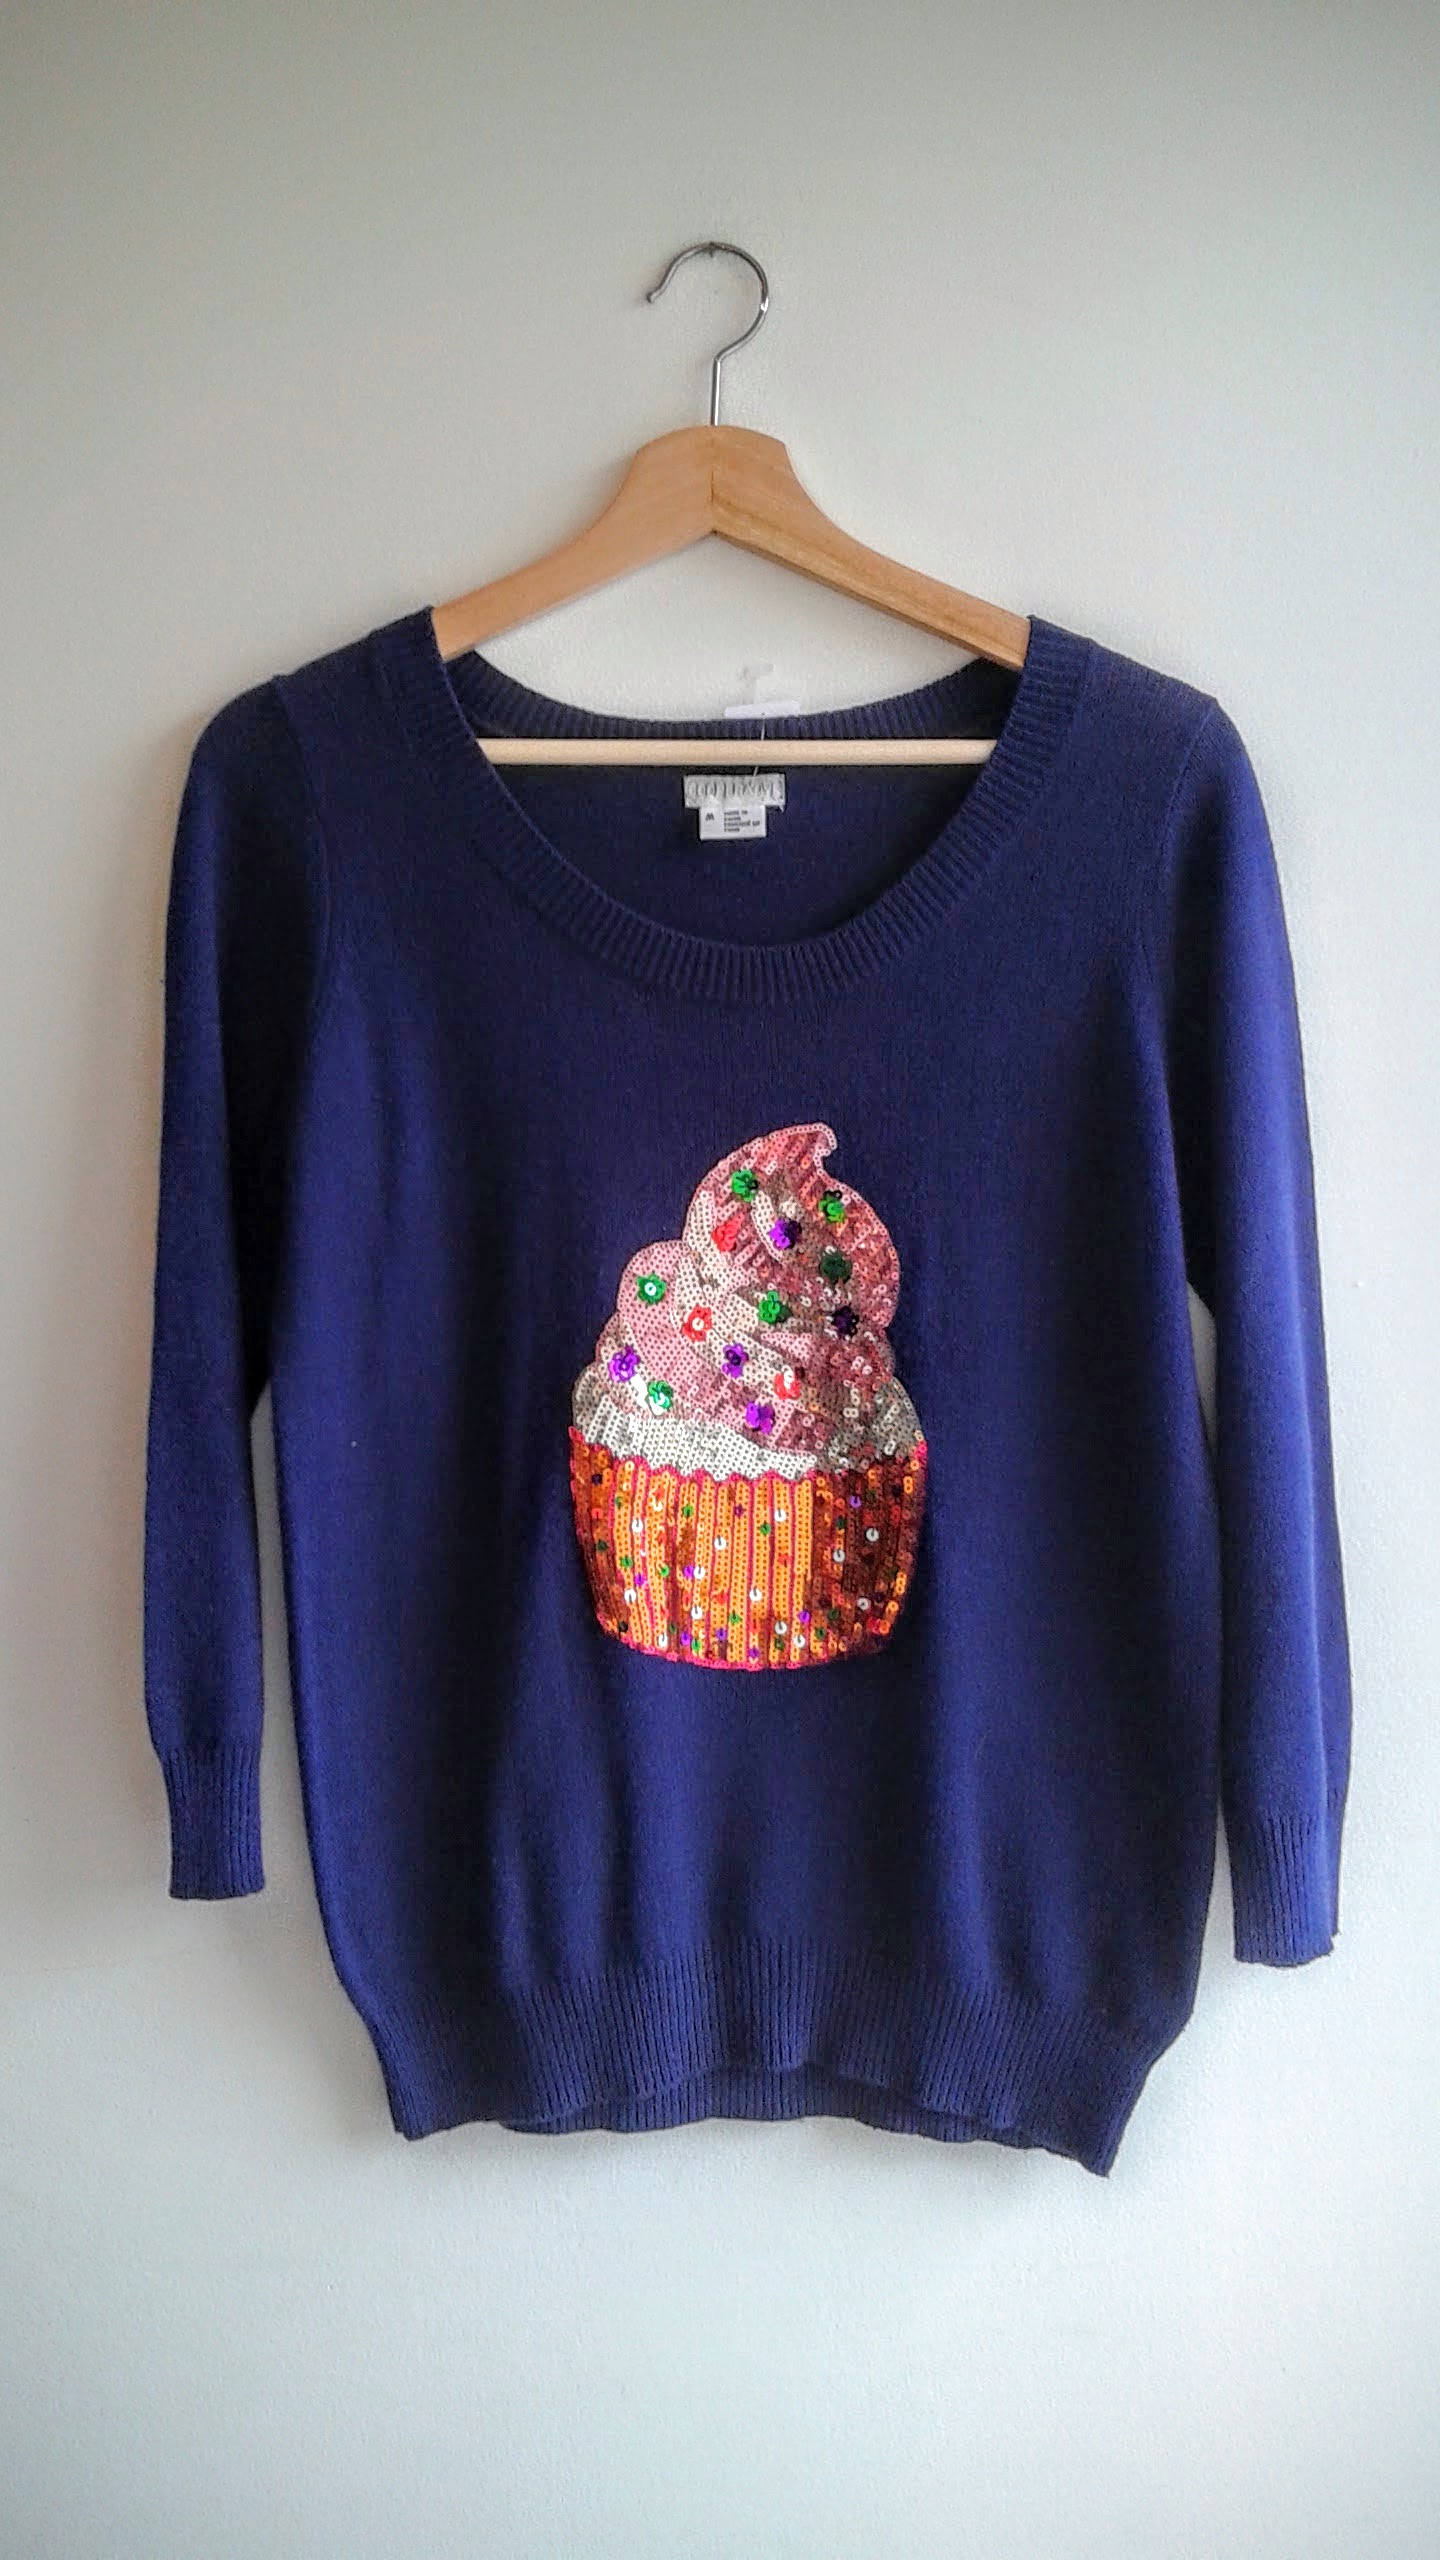 Cooperative sweater; Size M, $28